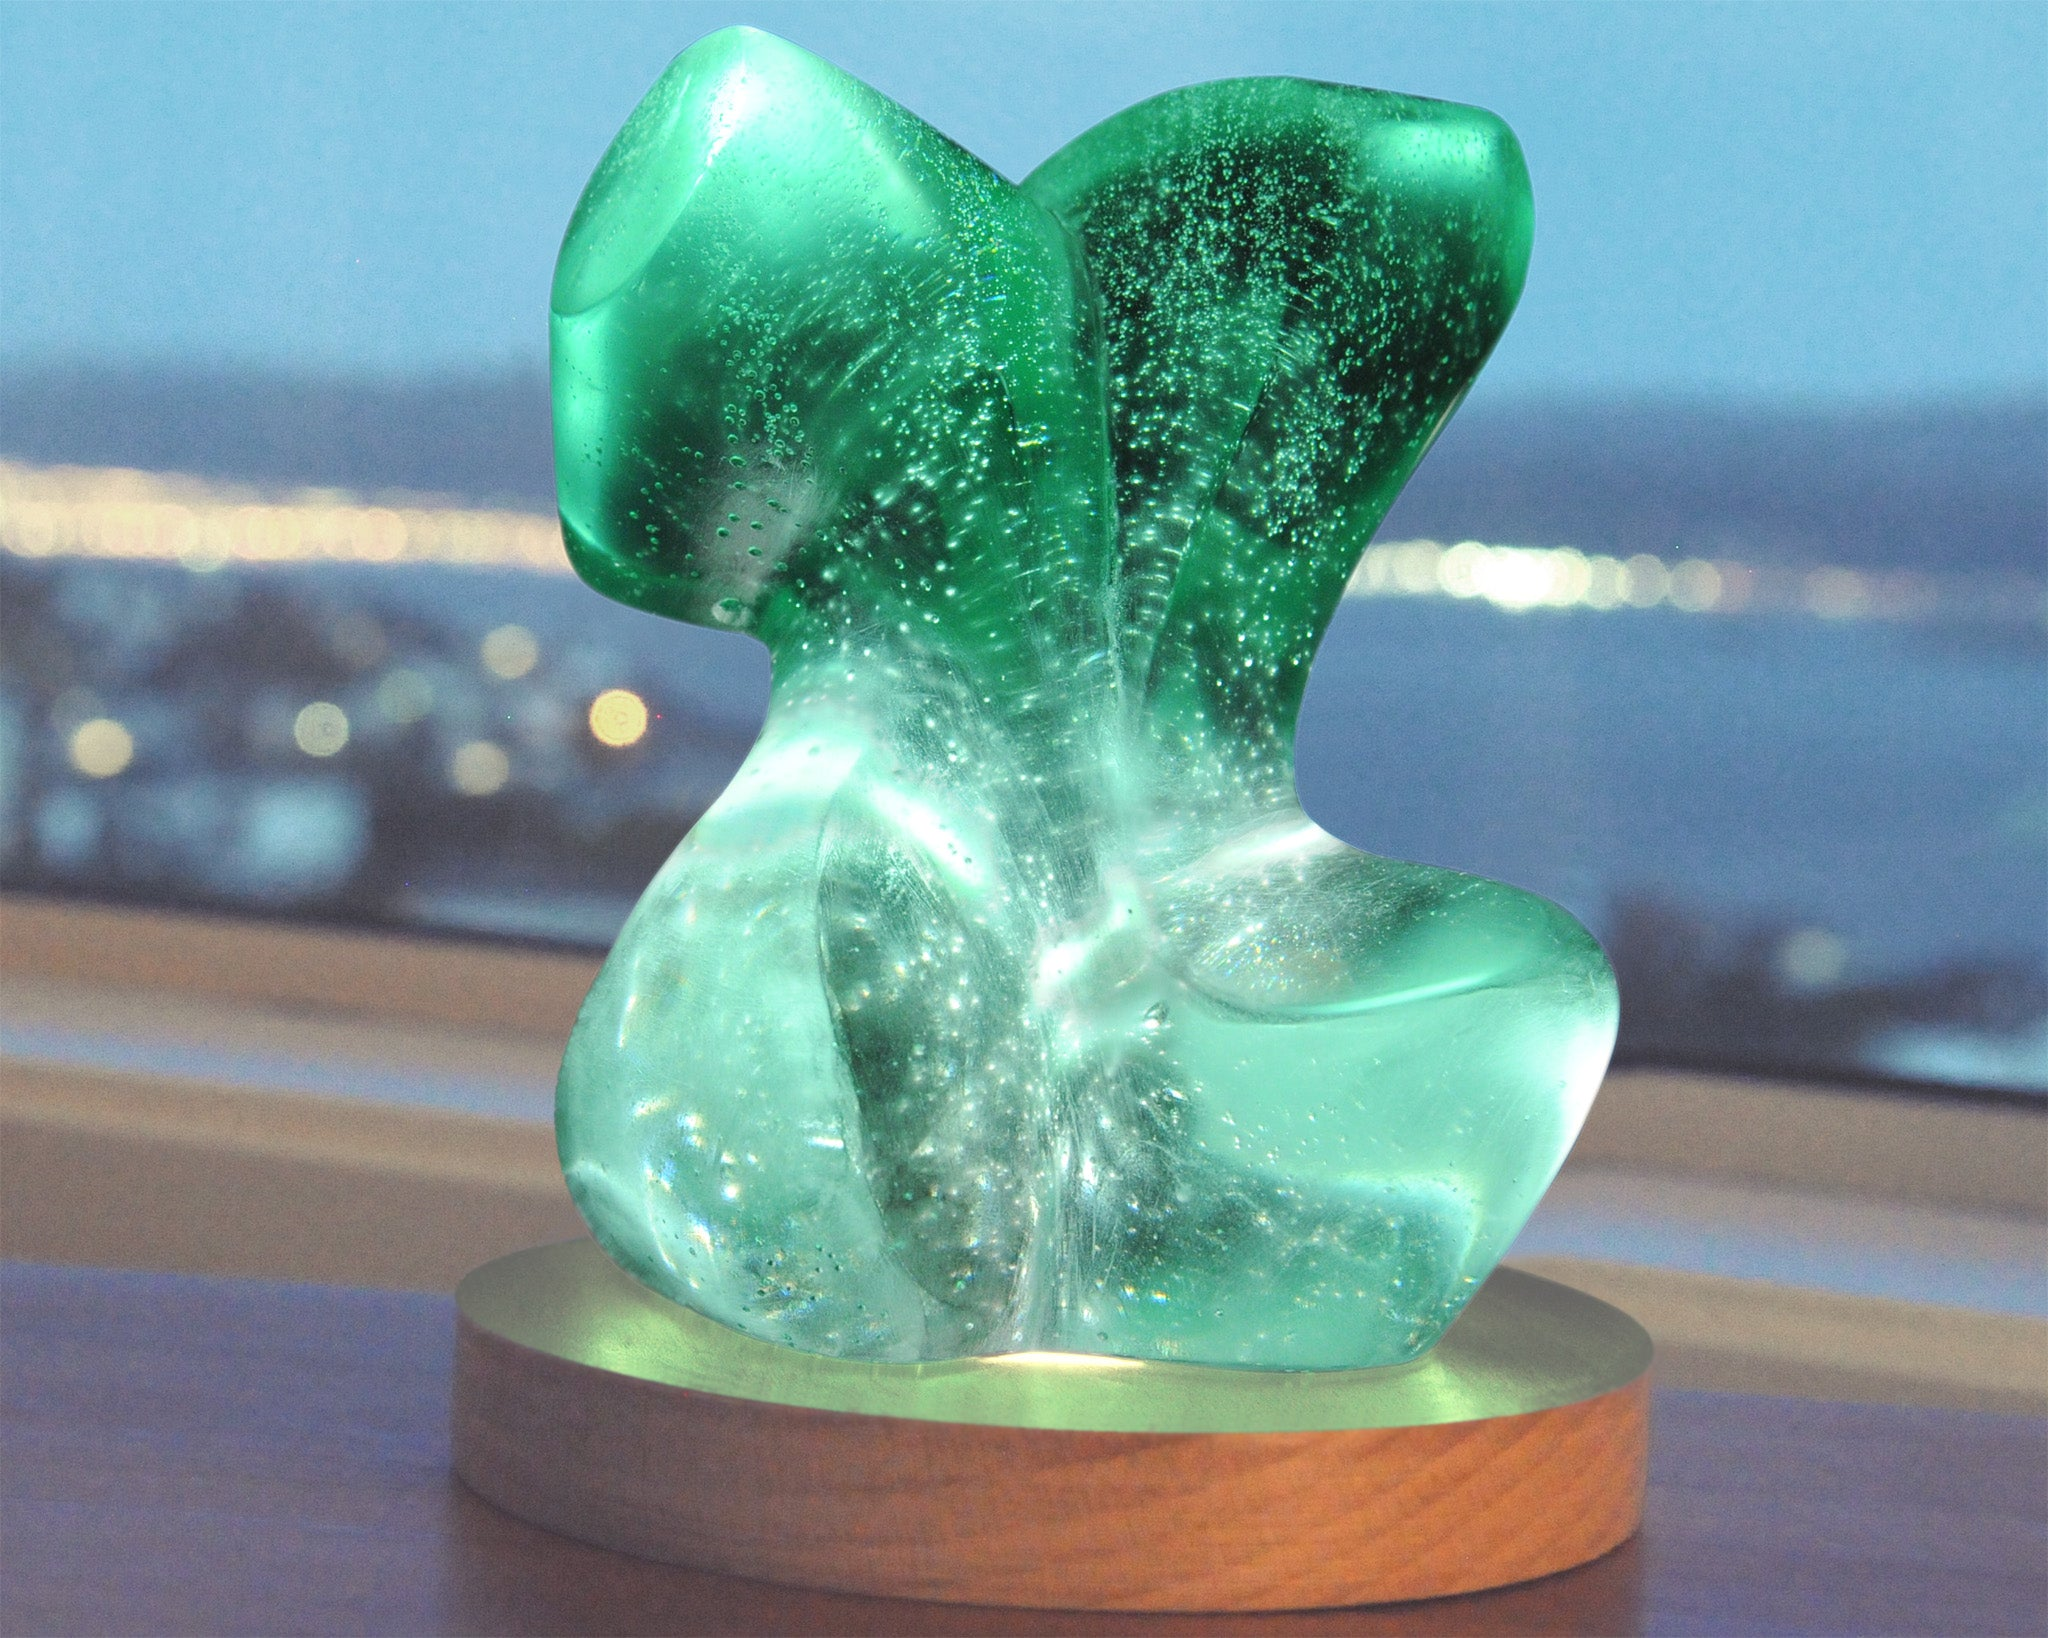 Abstract female figurative cast glass sculpture with light by Stephen Williams.